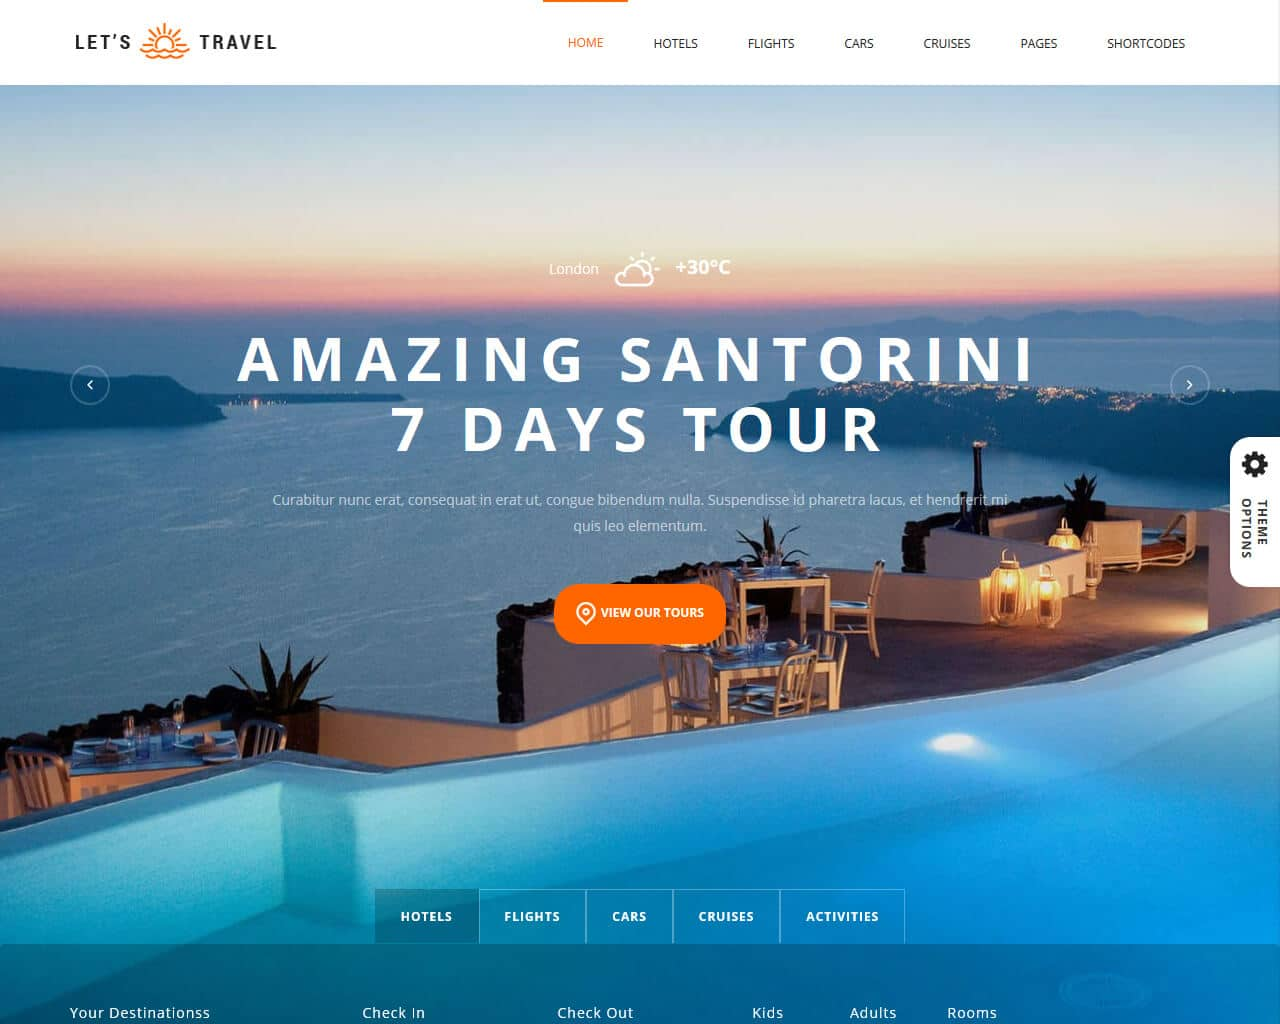 Let's Travel Website Template